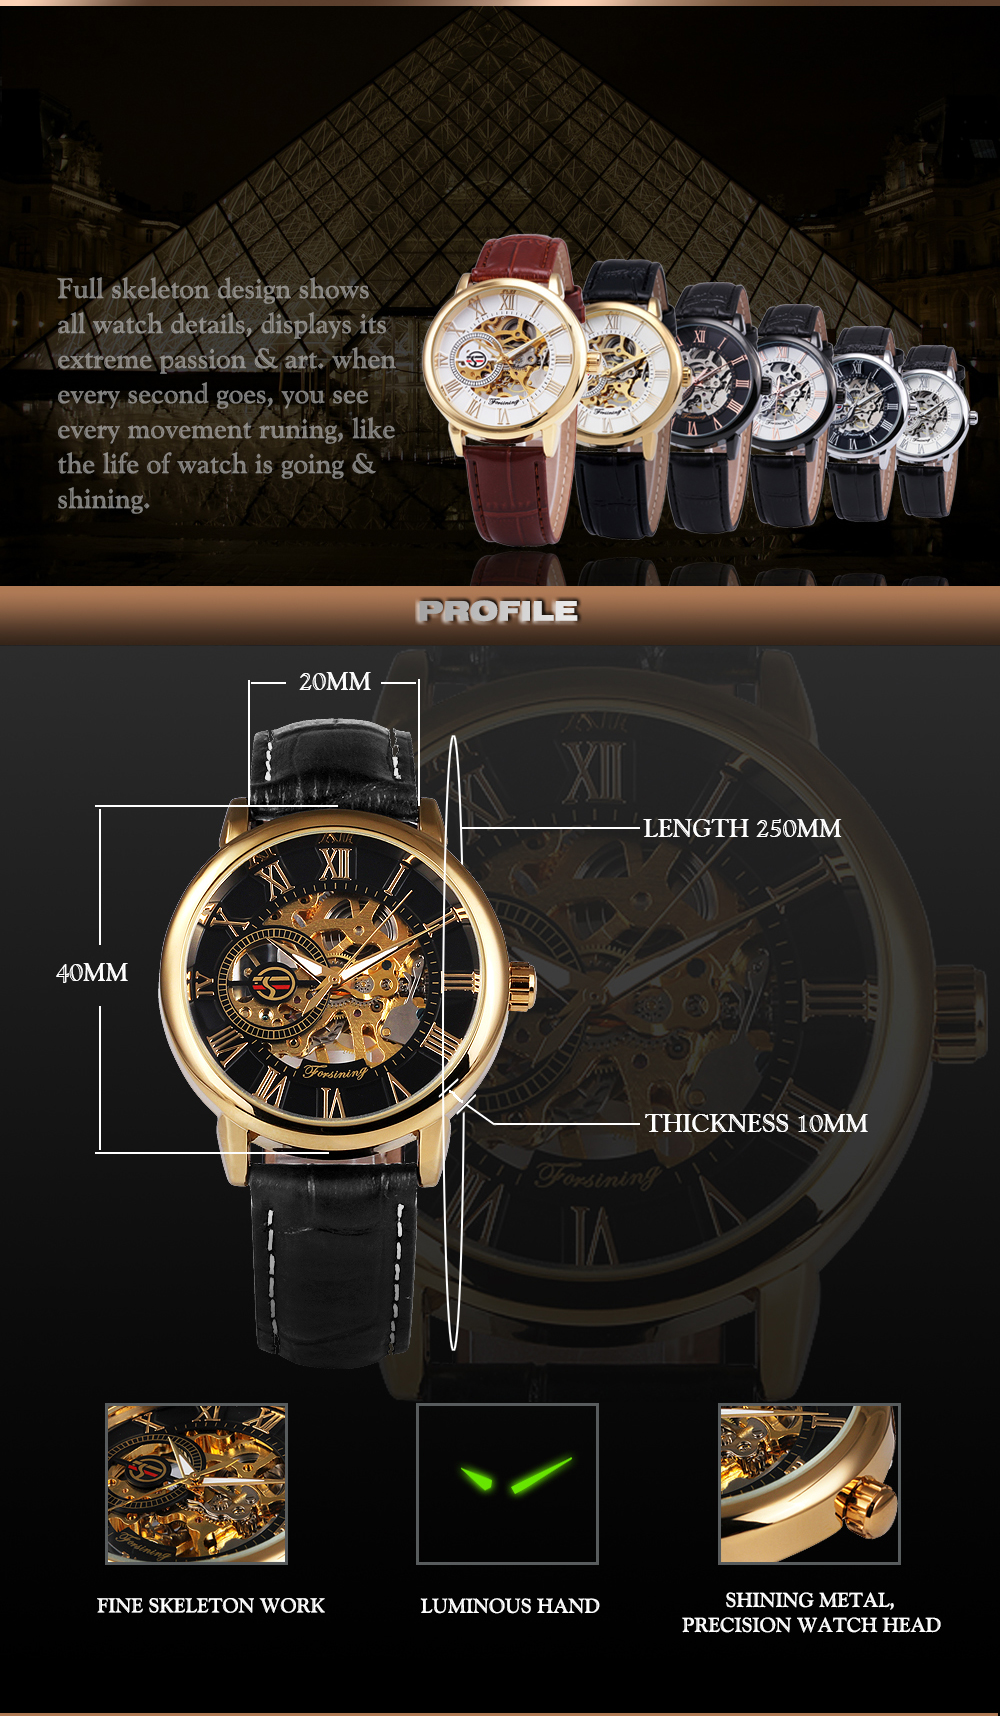 HTB1Y1JRSXXXXXXoaFXXq6xXFXXXp - Forsining Classic Mechanical Watch for Men